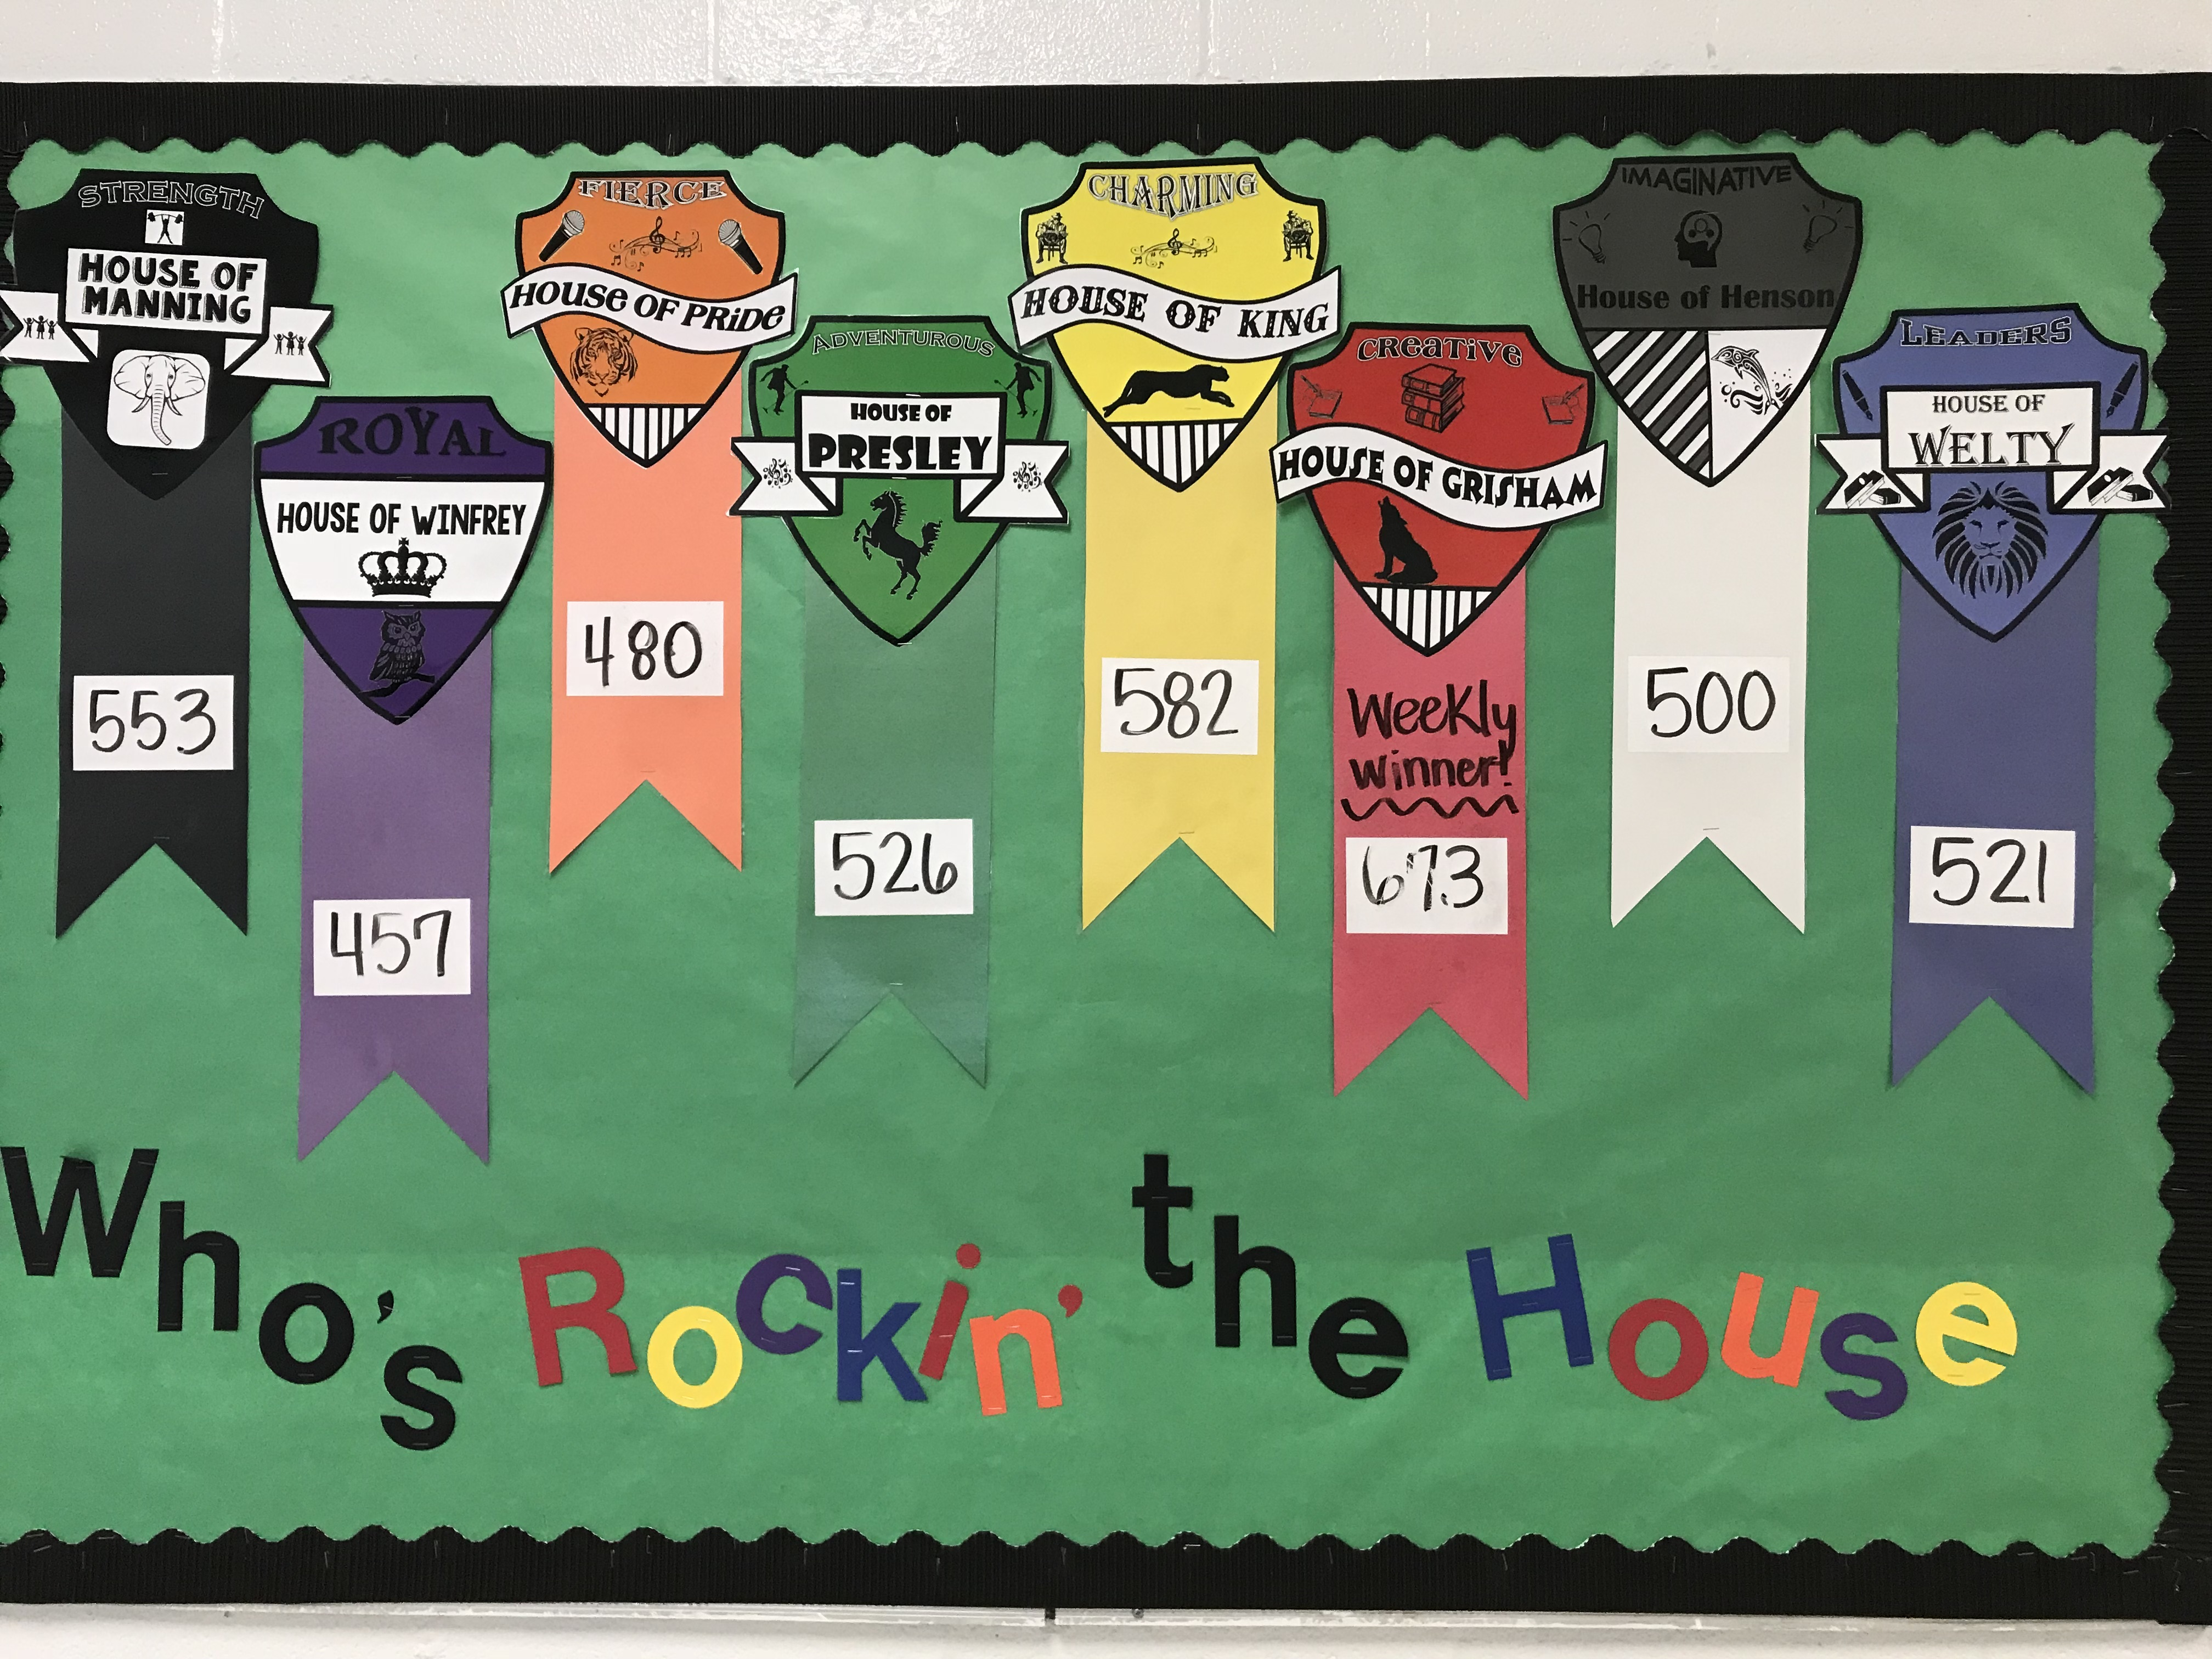 Rocking the House Standings